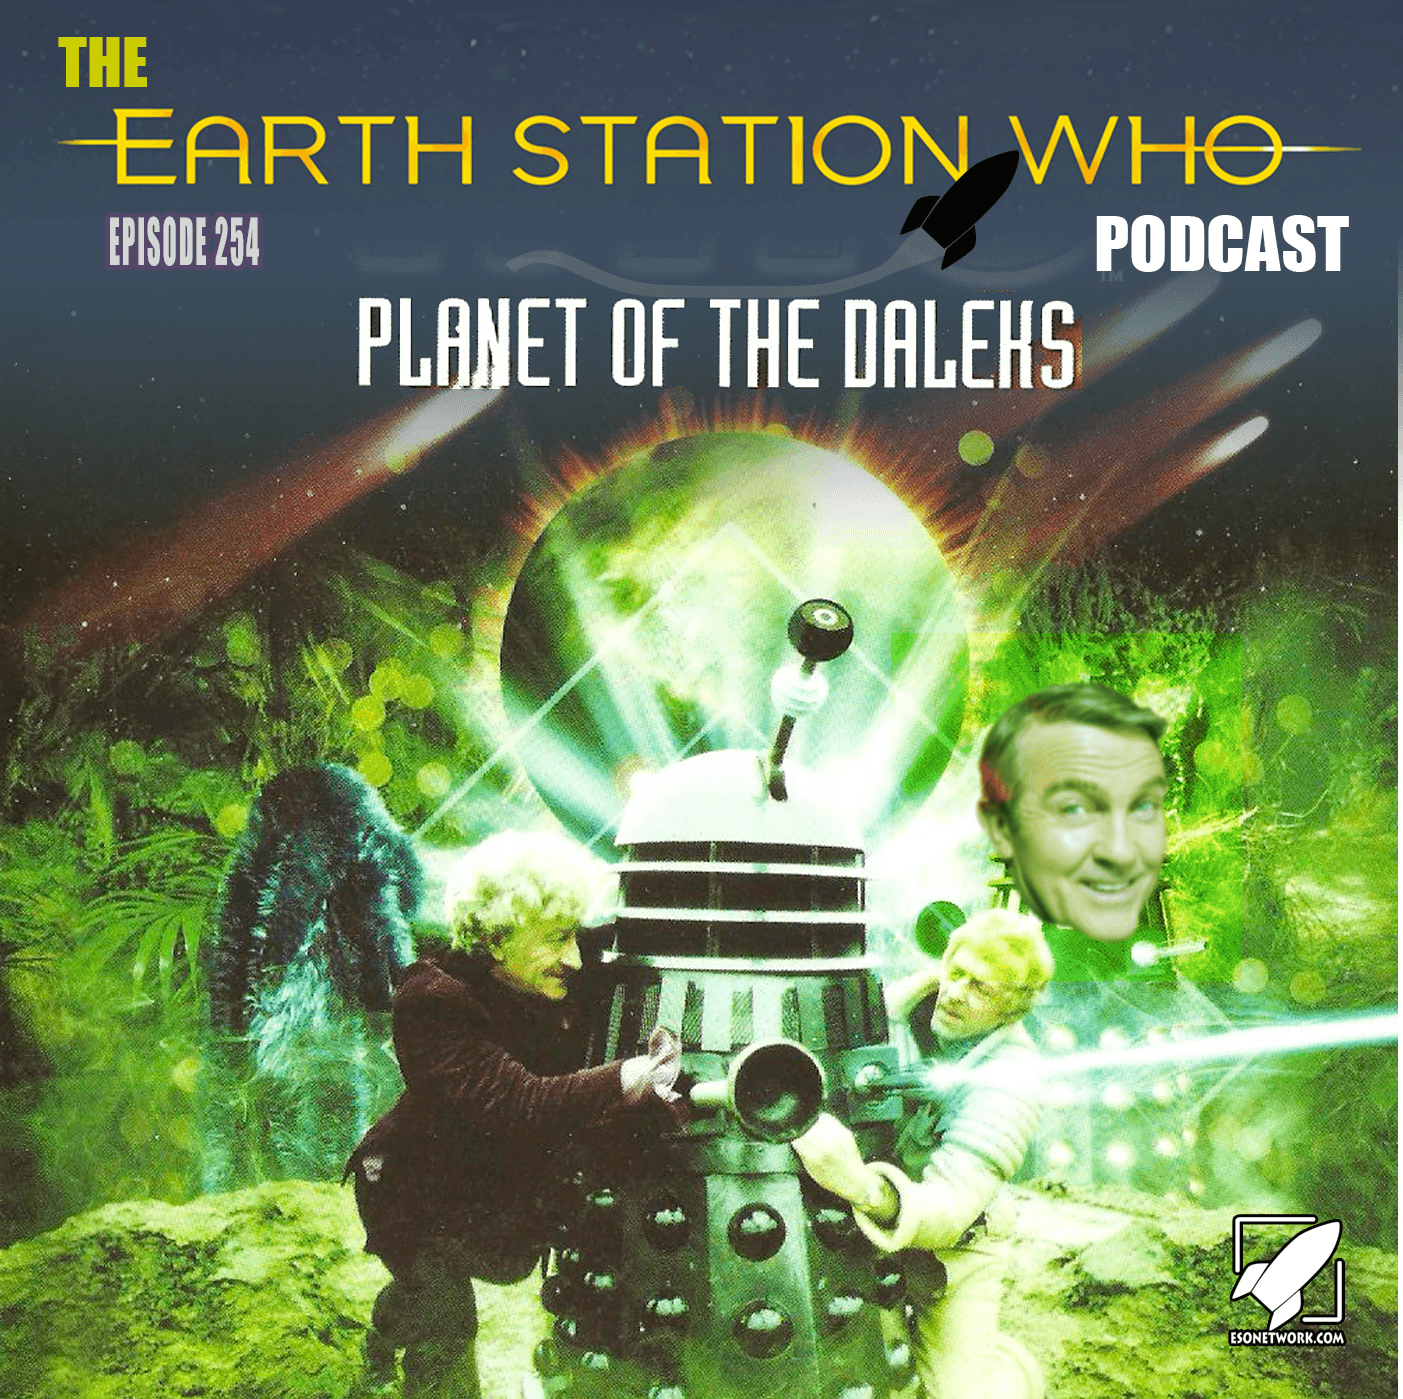 The Earth Station Who Podcast Ep 254